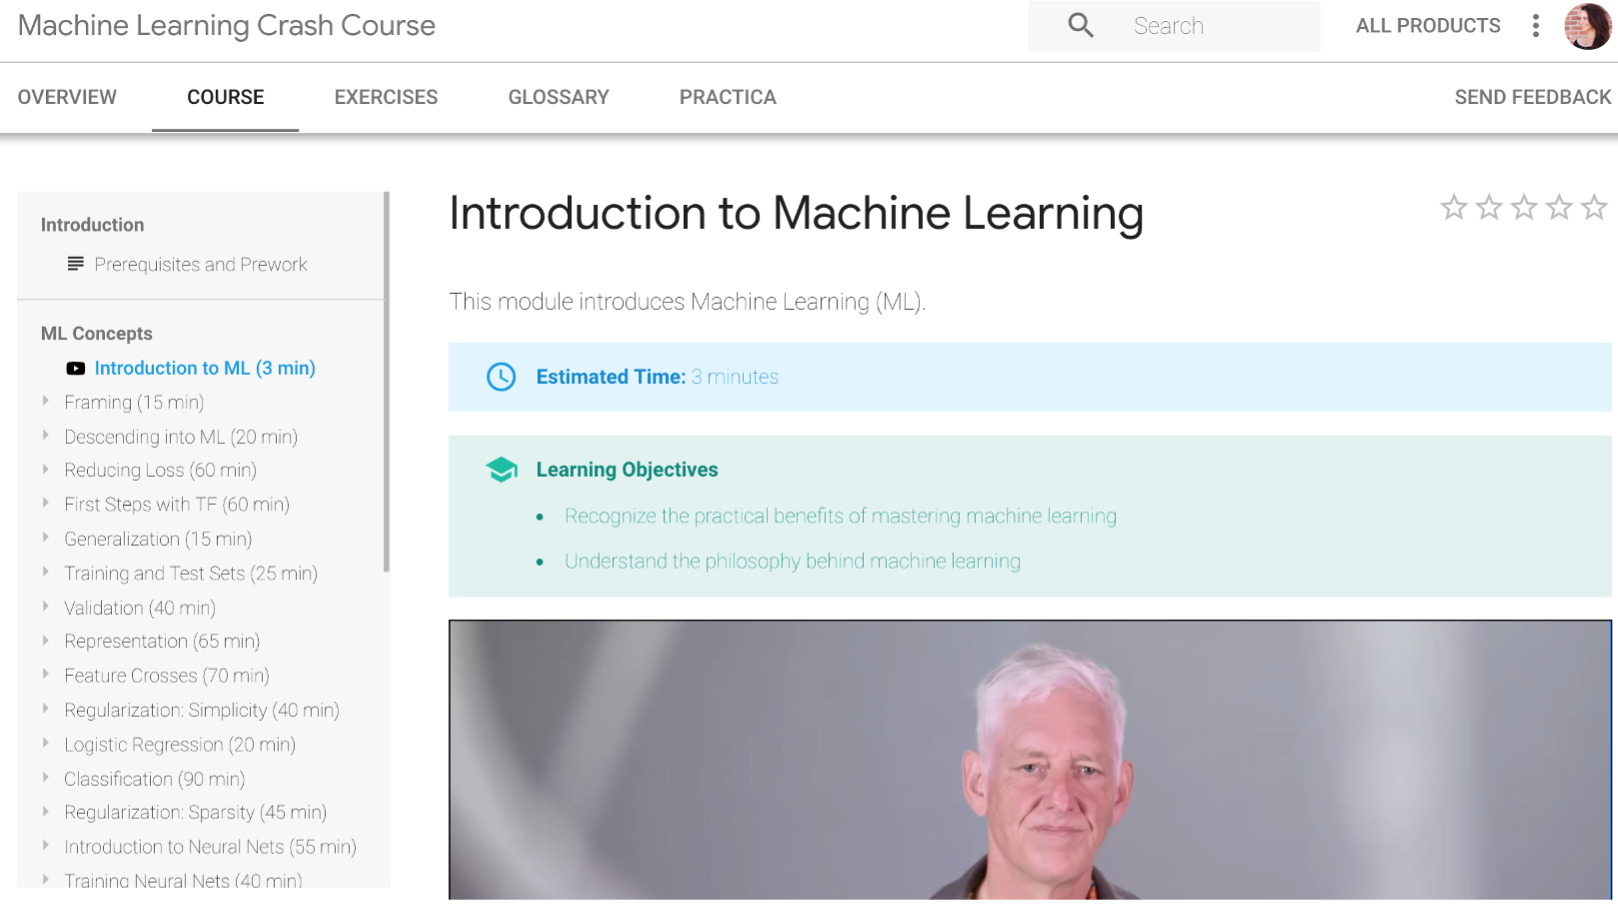 TechSEO Boost: Machine Learning for Marketers - Good Audience